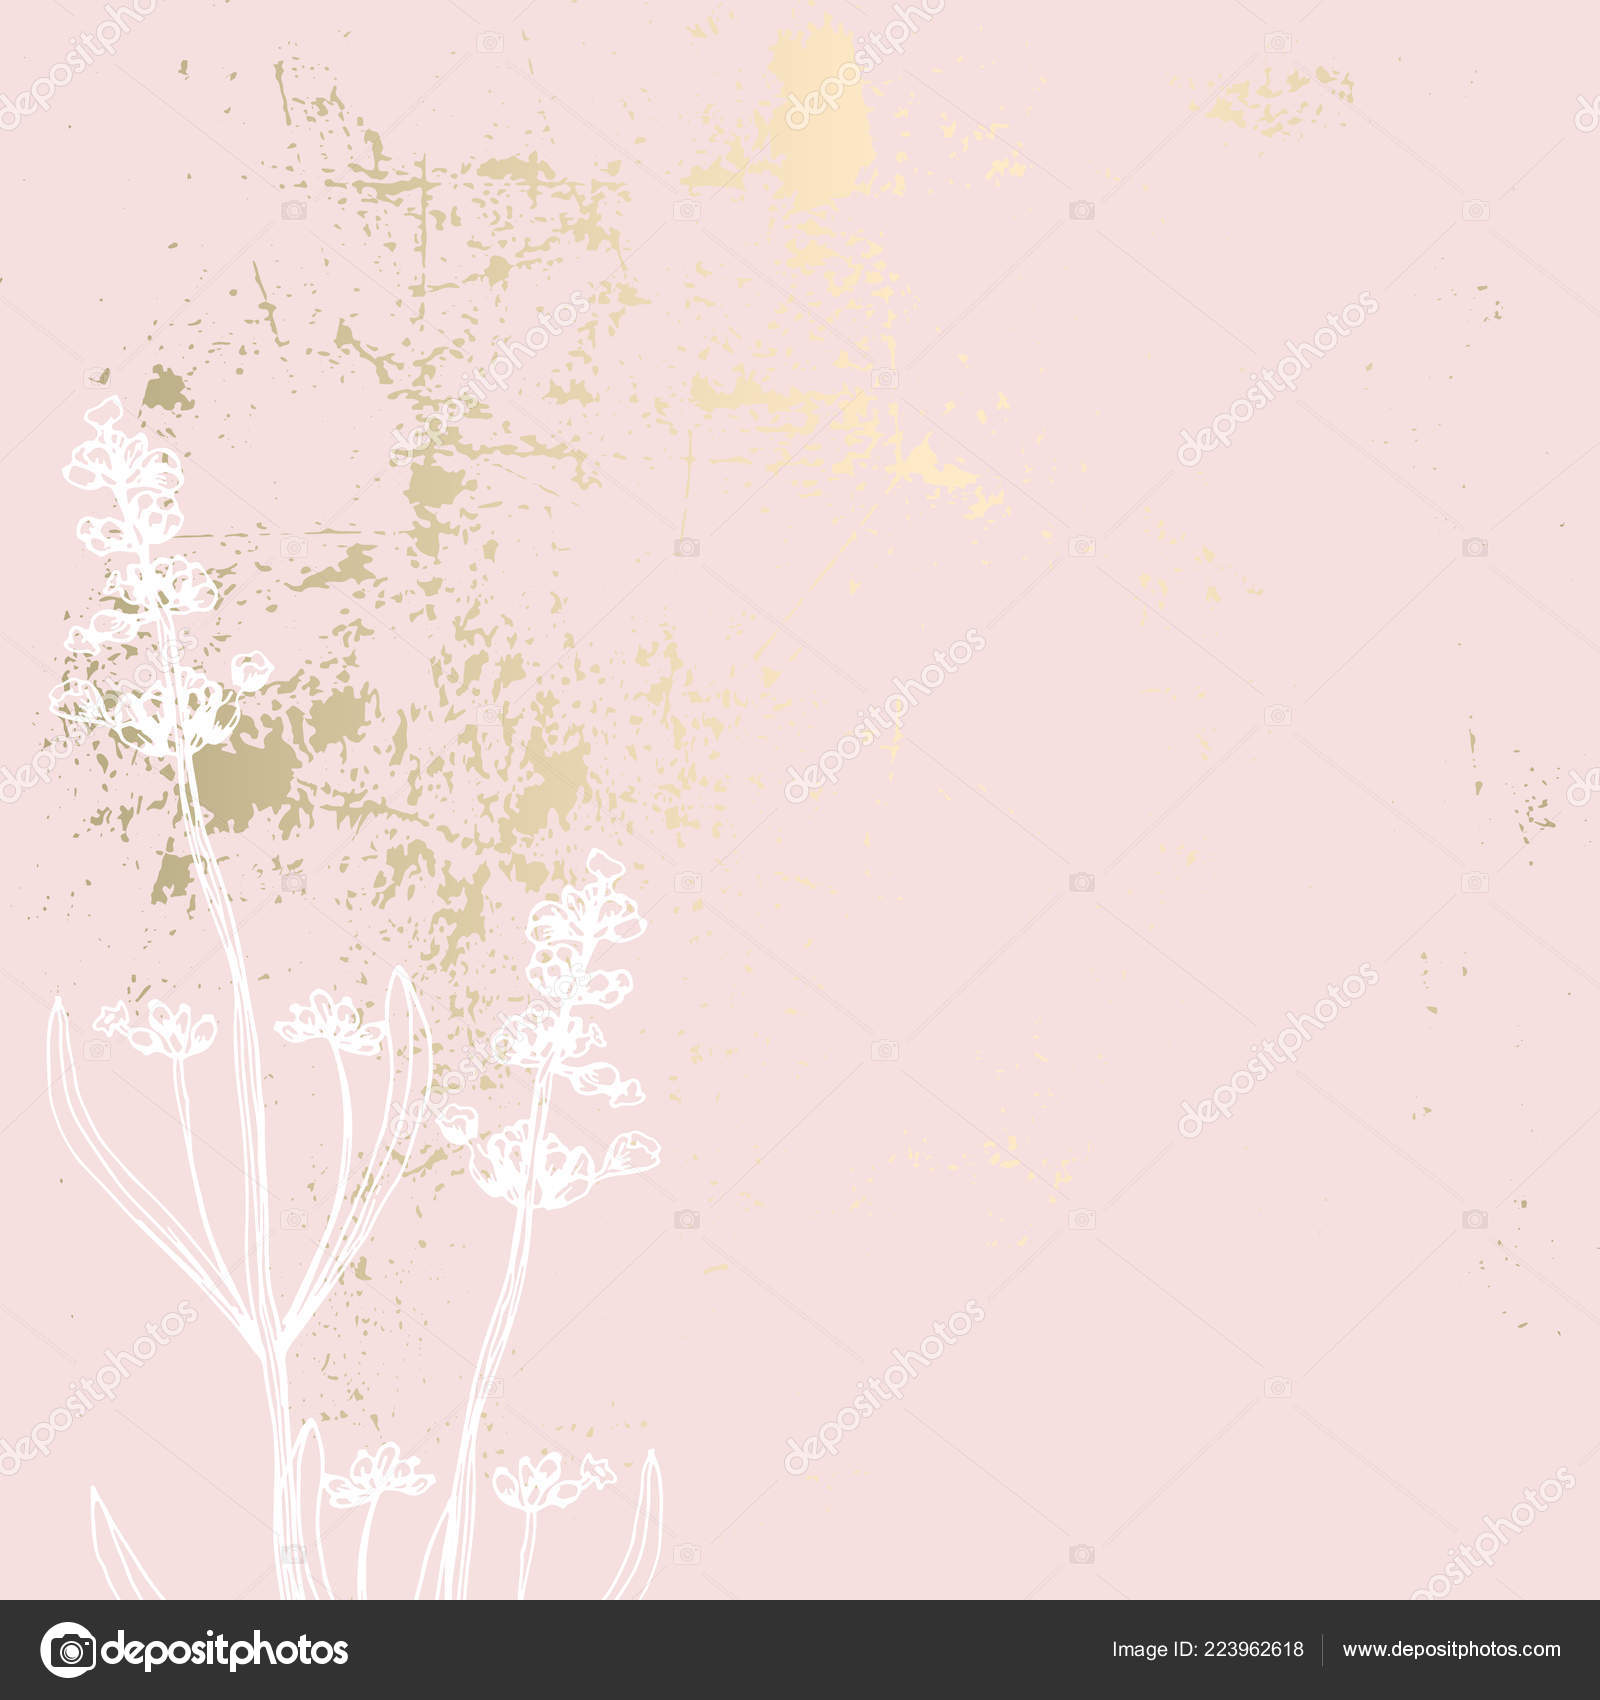 Trendy Elegant Pastel Blush Pink Gold Texture Backdrop